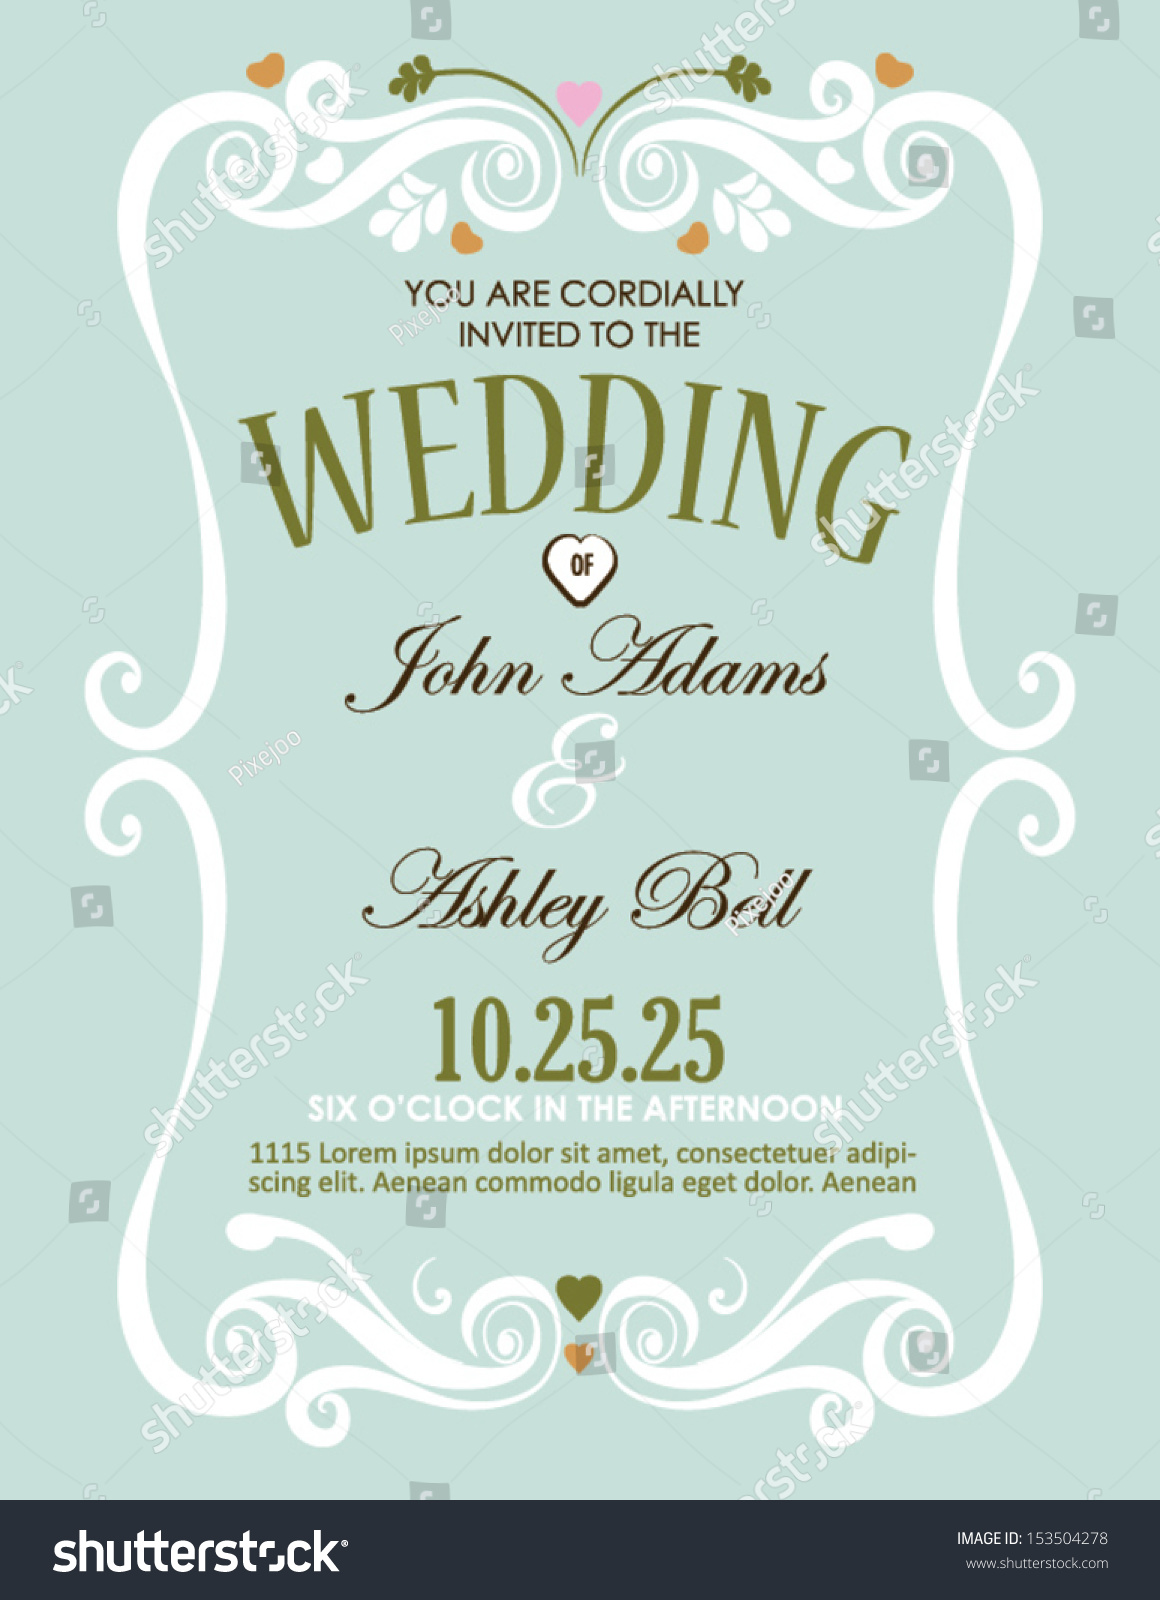 Wedding Invitation Card Design Vector Border Vector – Wedding Card Invitations